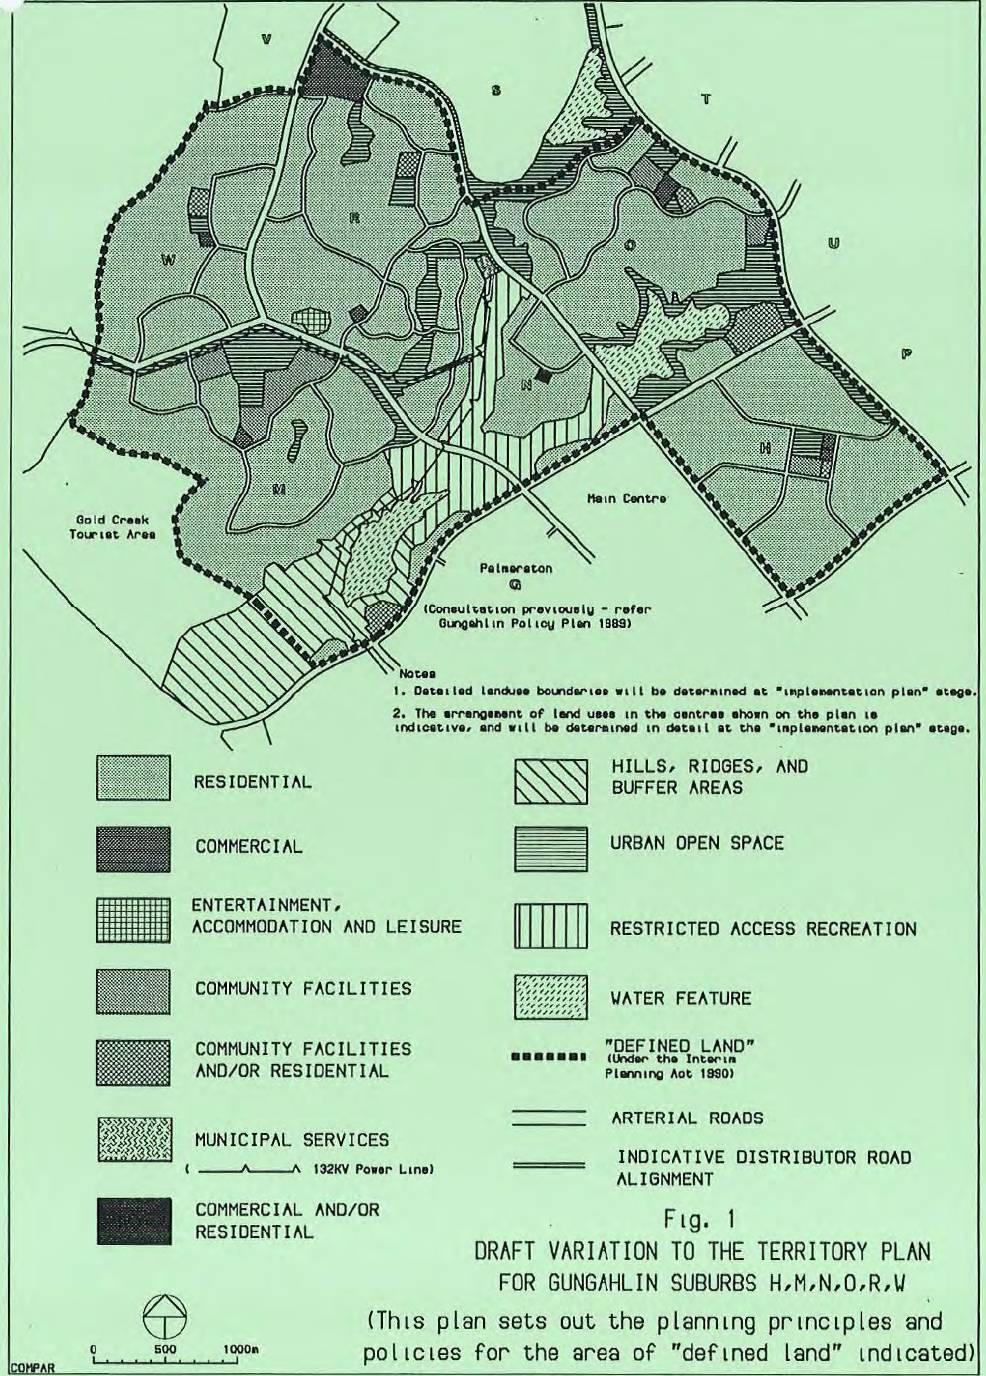 Draft Variation to the Territory Plan for Gungahlin Suburbs H, M, N, O, R, W (Source: 91/19078)